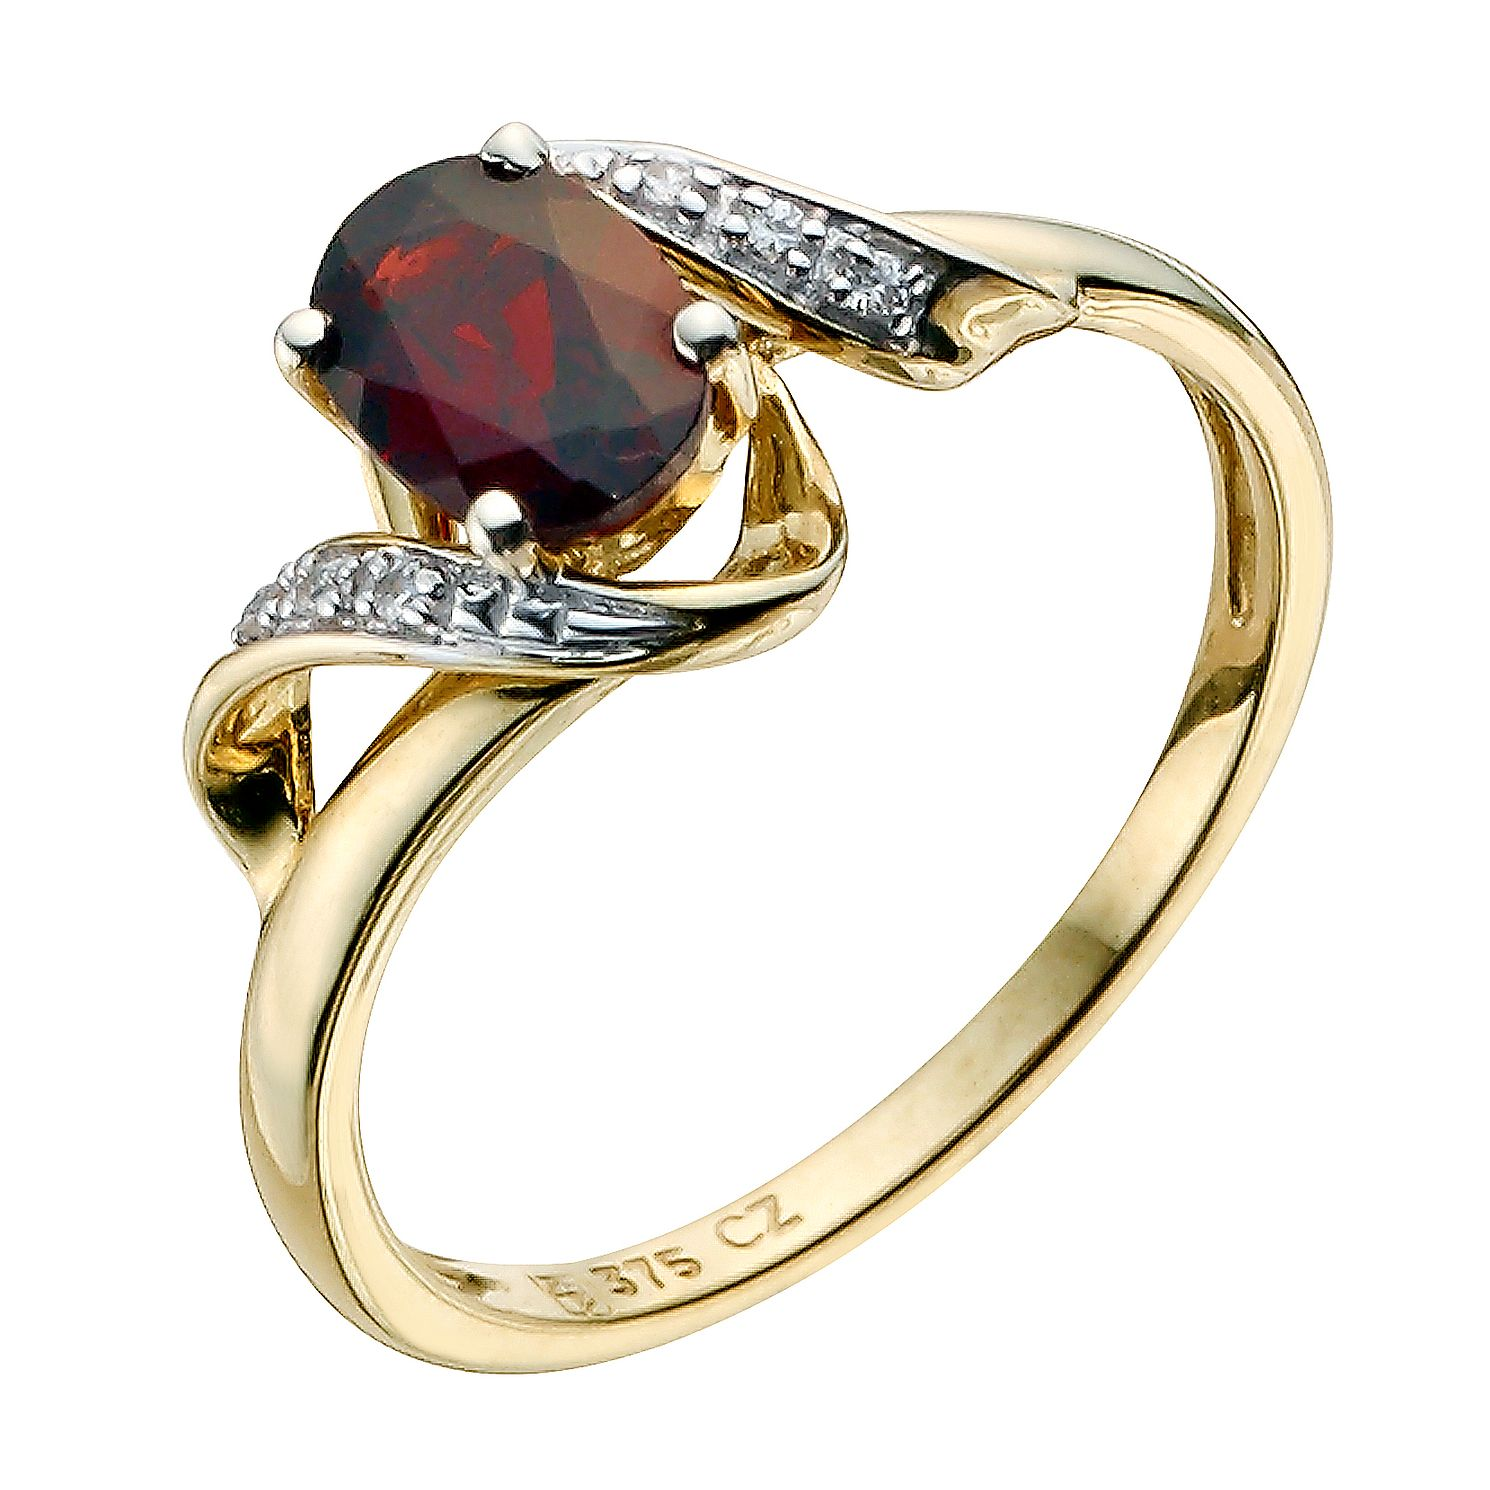 9ct Yellow Gold Garnet & Cubic Zirconia Swirl Ring - Product number 8946132